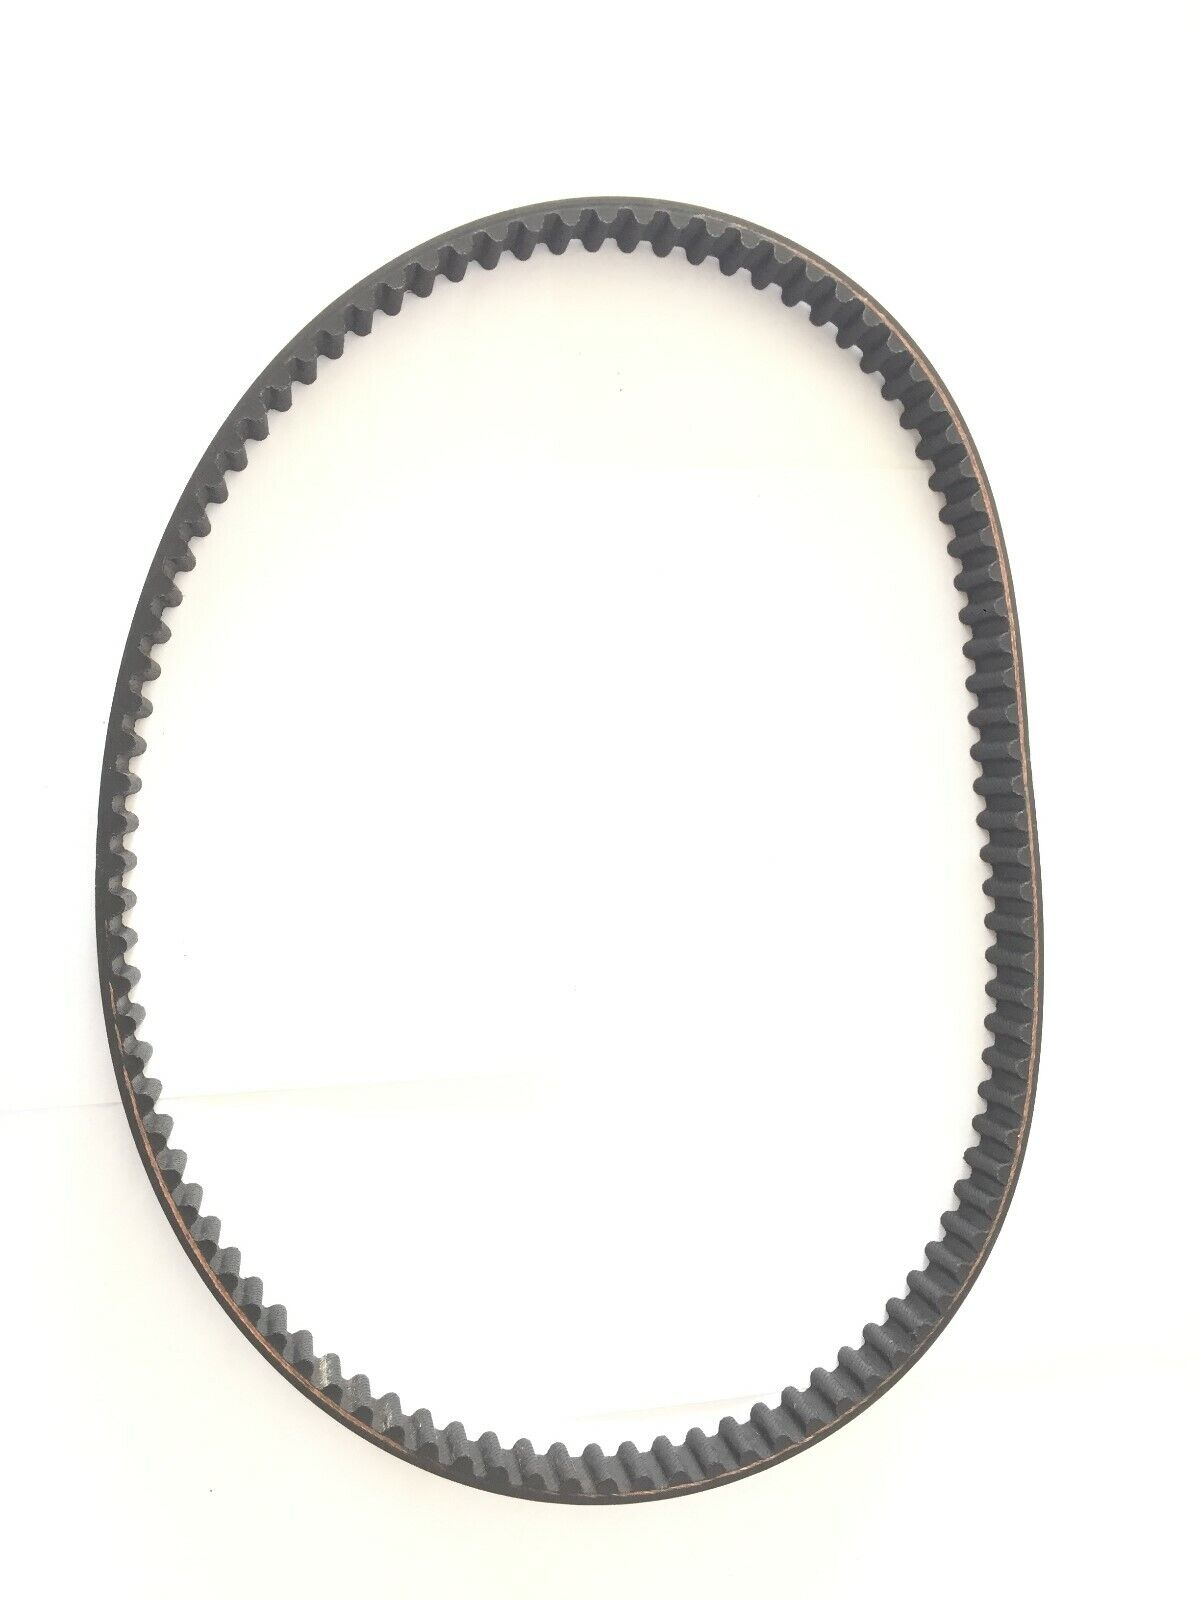 Timing Belt For Yamaha Outboard F25-F70 4-Stroke 6C5-46241